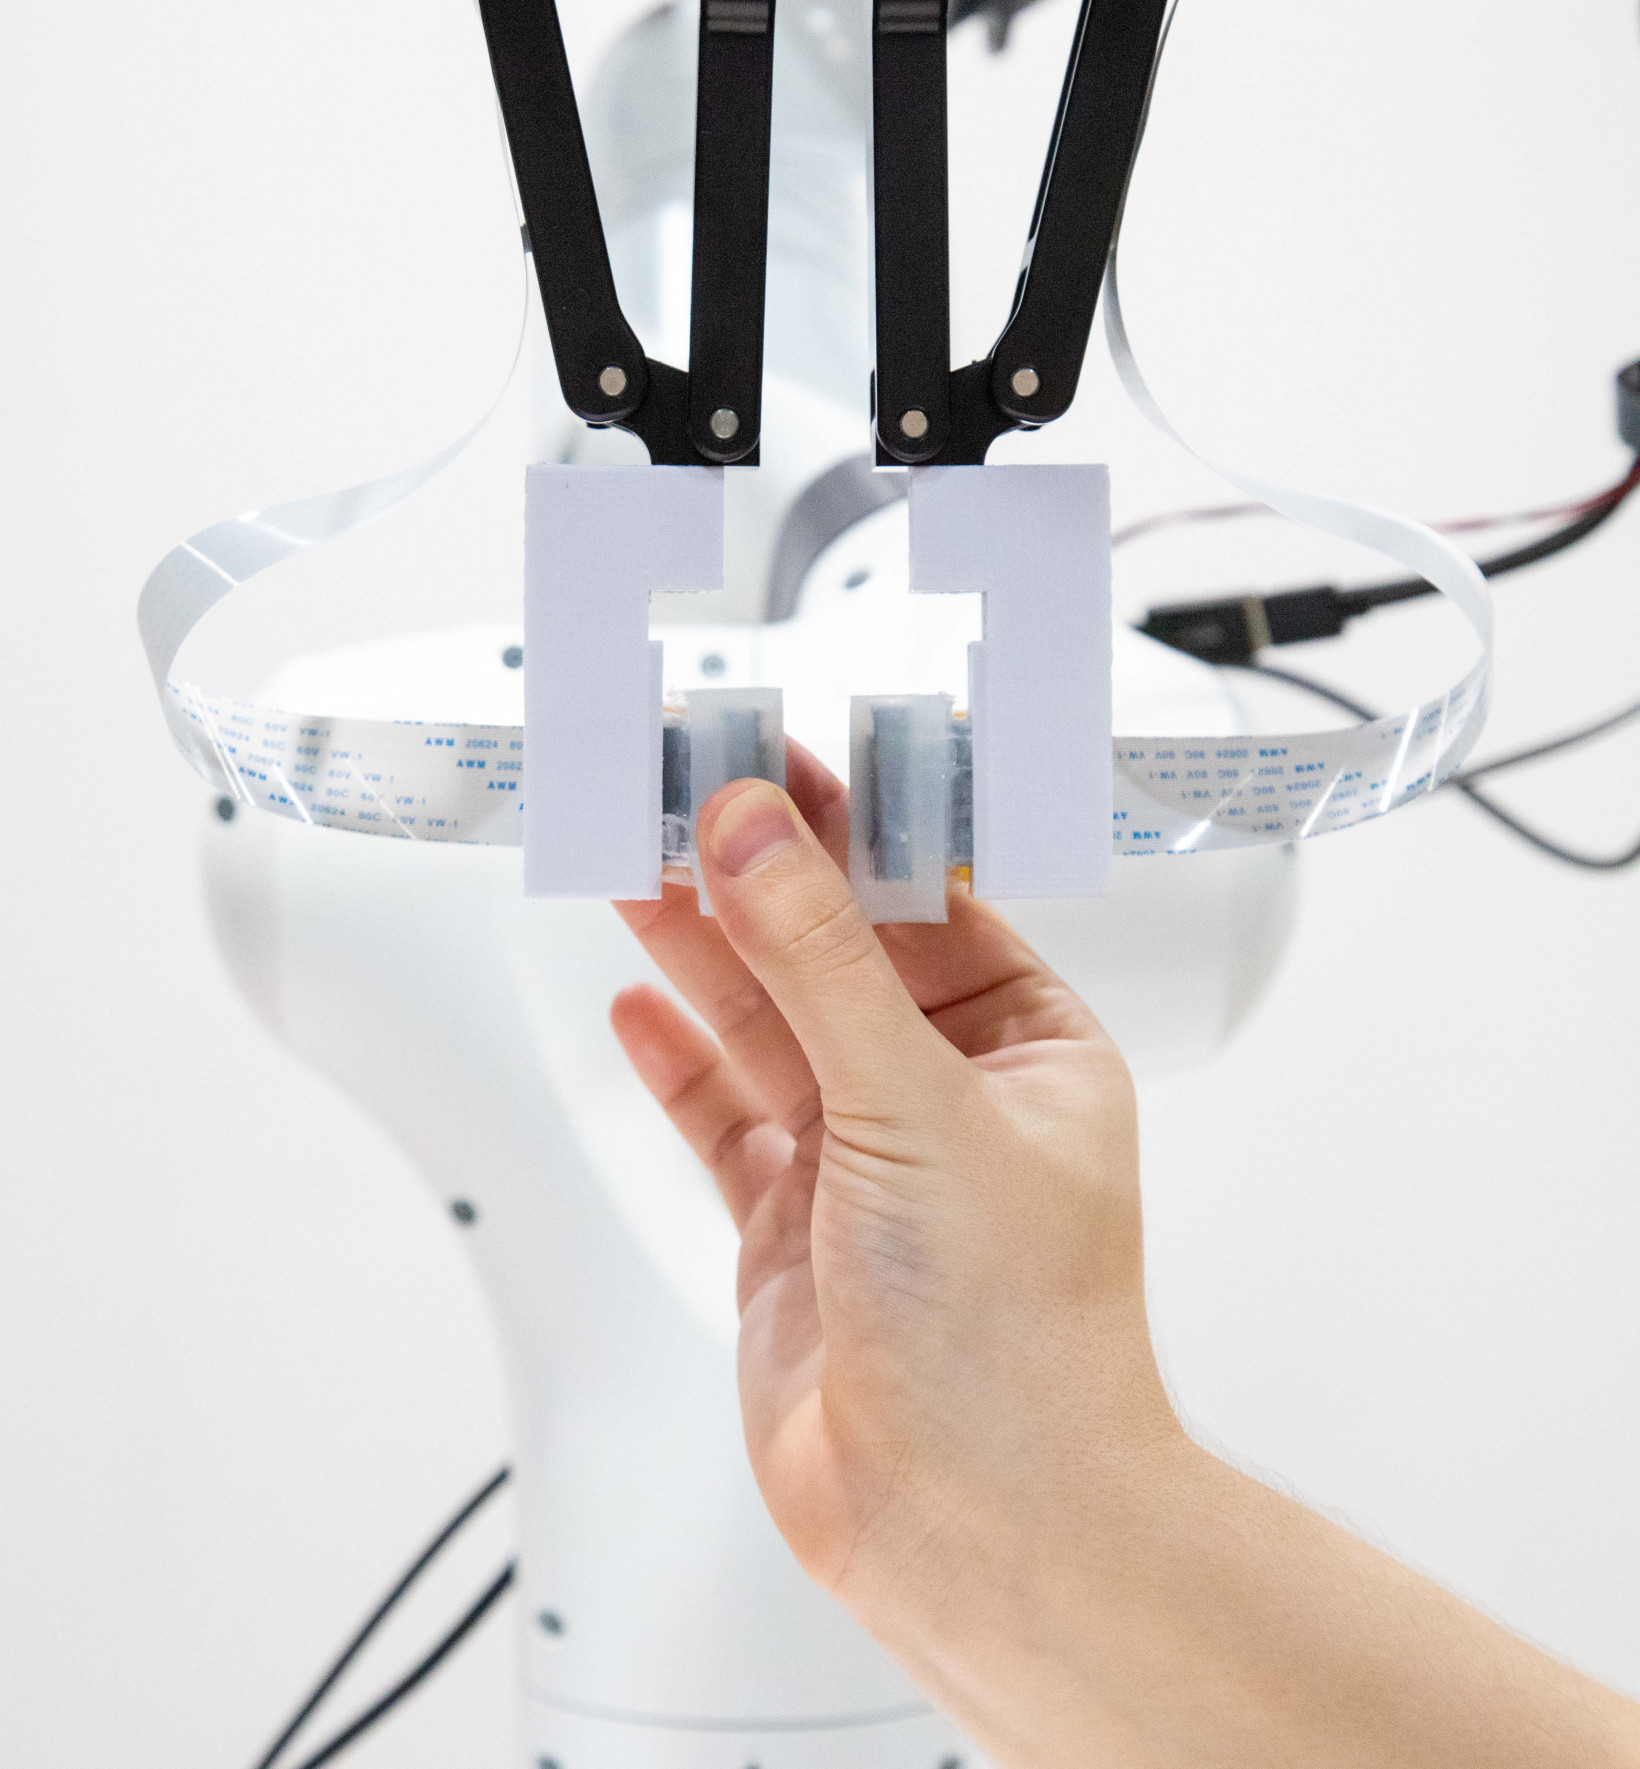 The system combines a neuromorphic brain with vision and touch data.